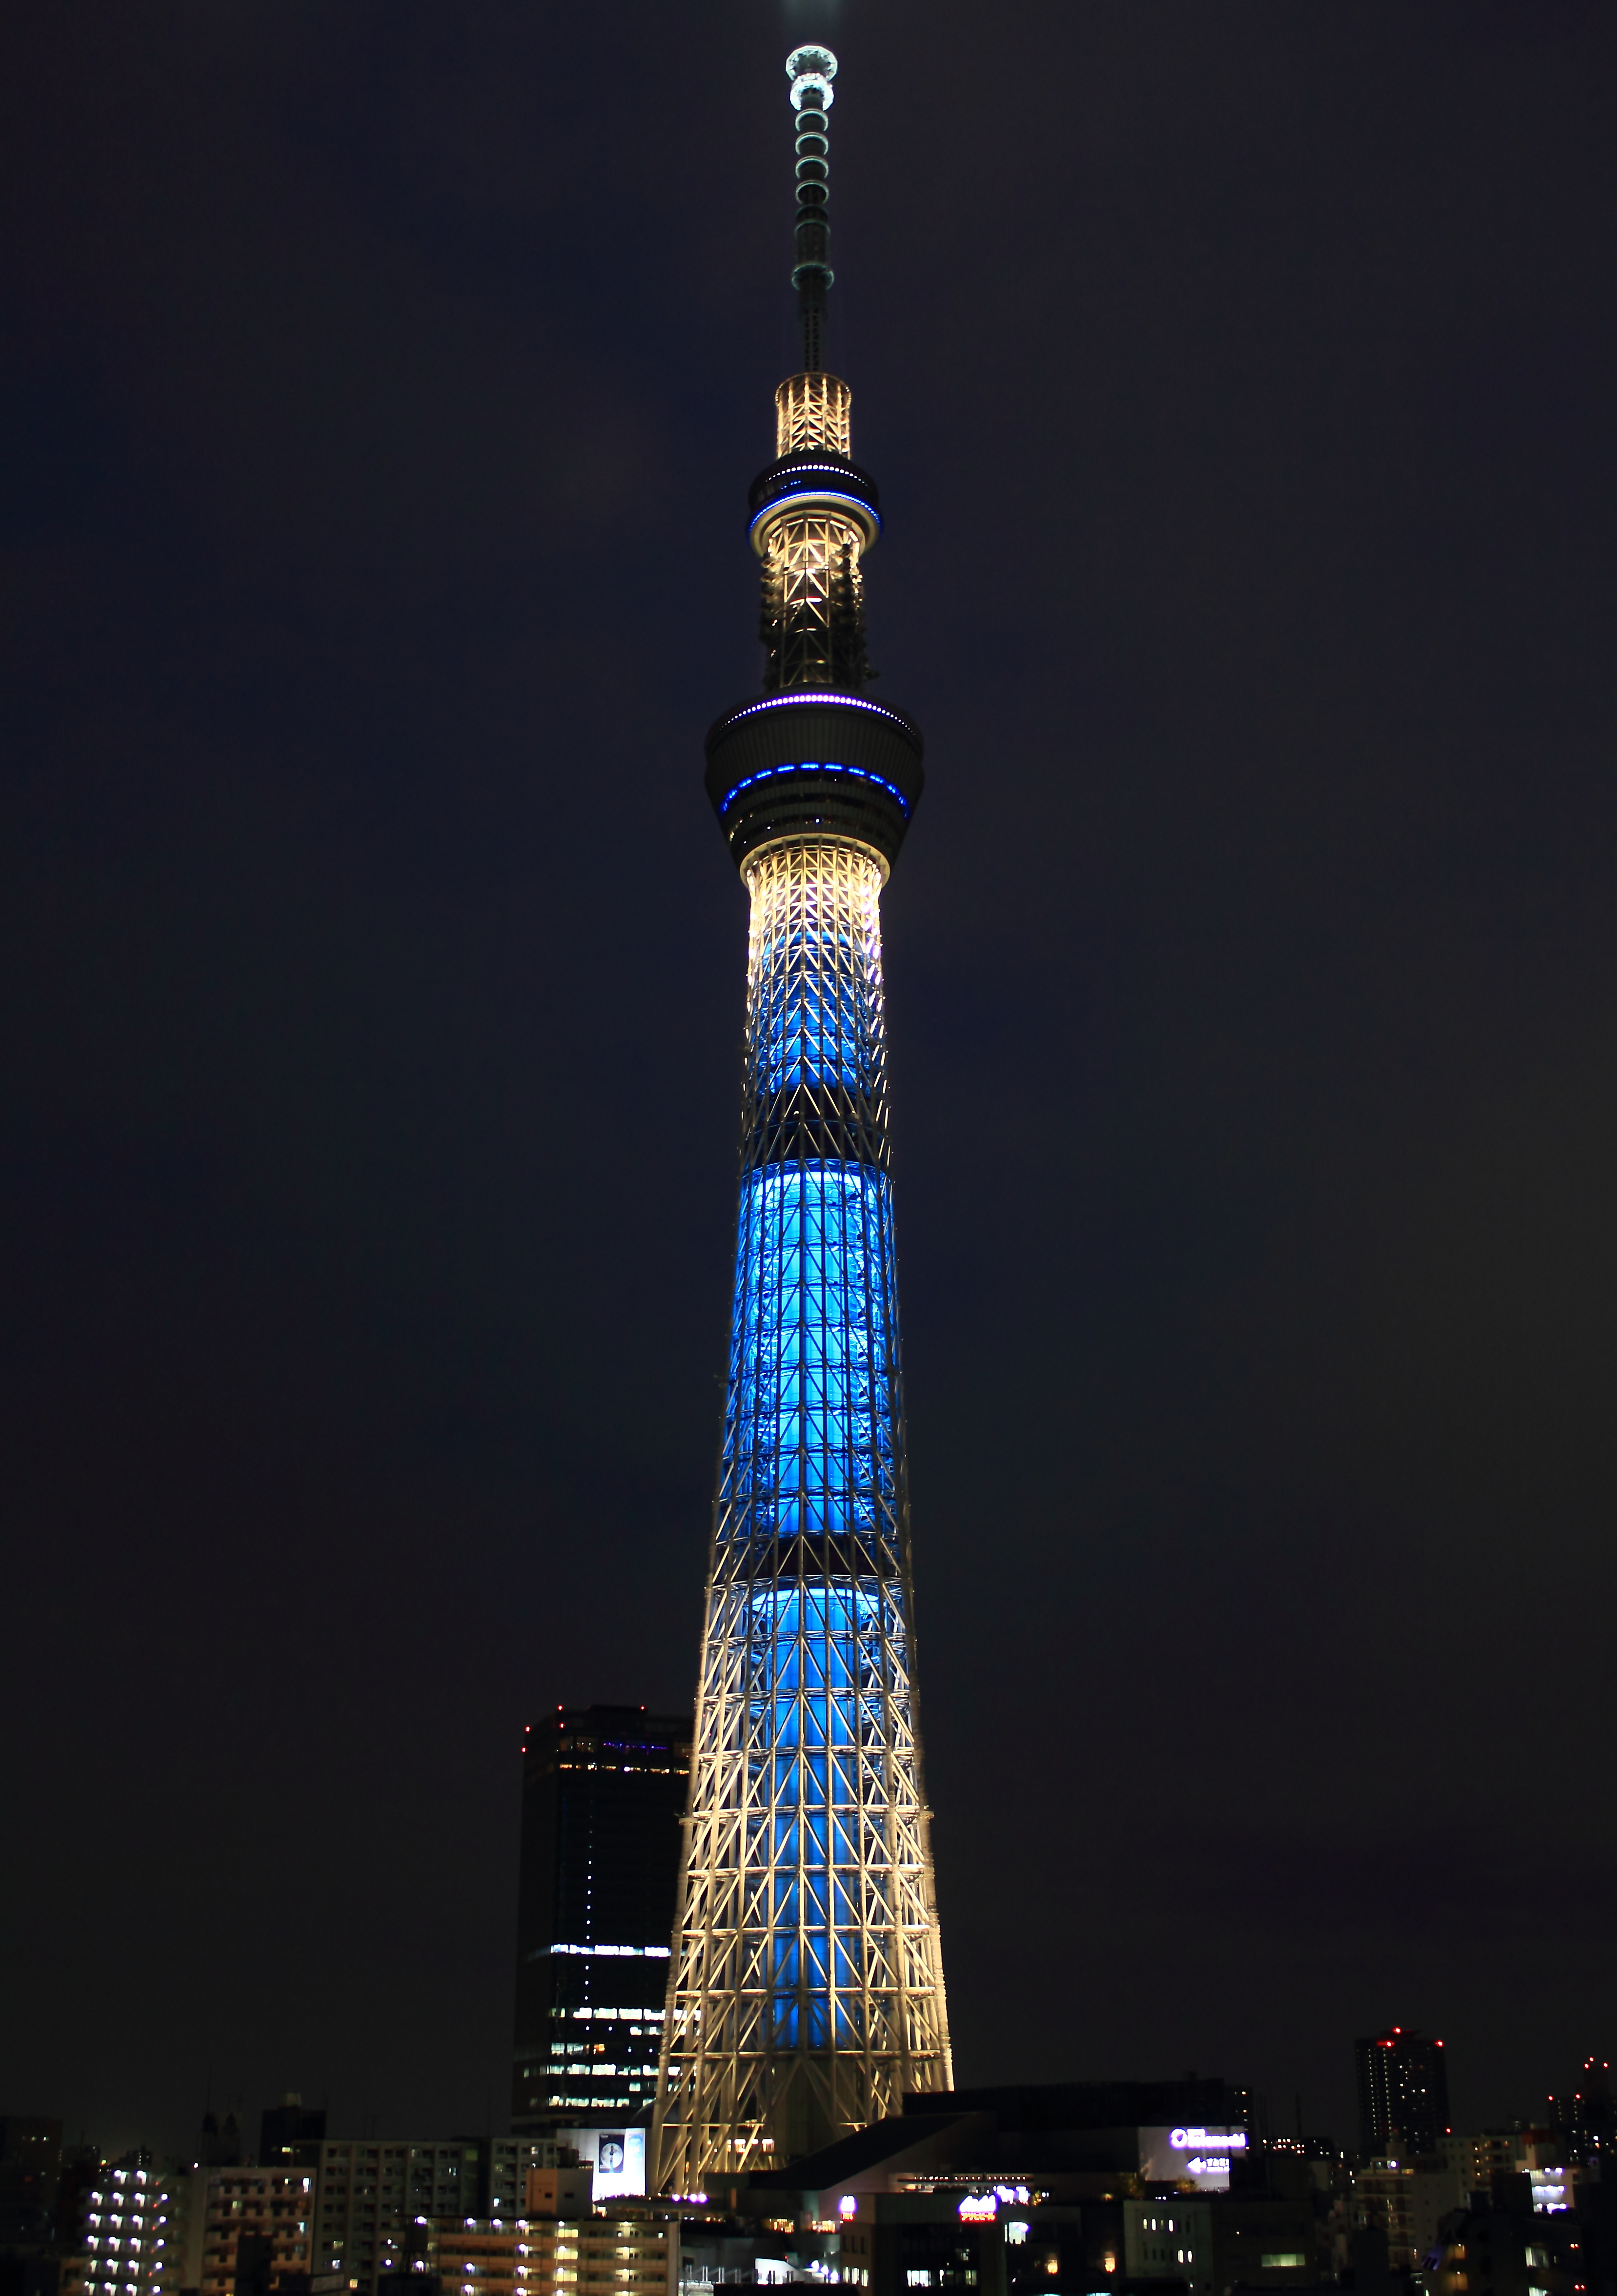 tokyo skytree The whole world is paying attention to the tokyo skytree, which has reached the height of 634 meters to become the highest freestanding broadcasting tower in the world.